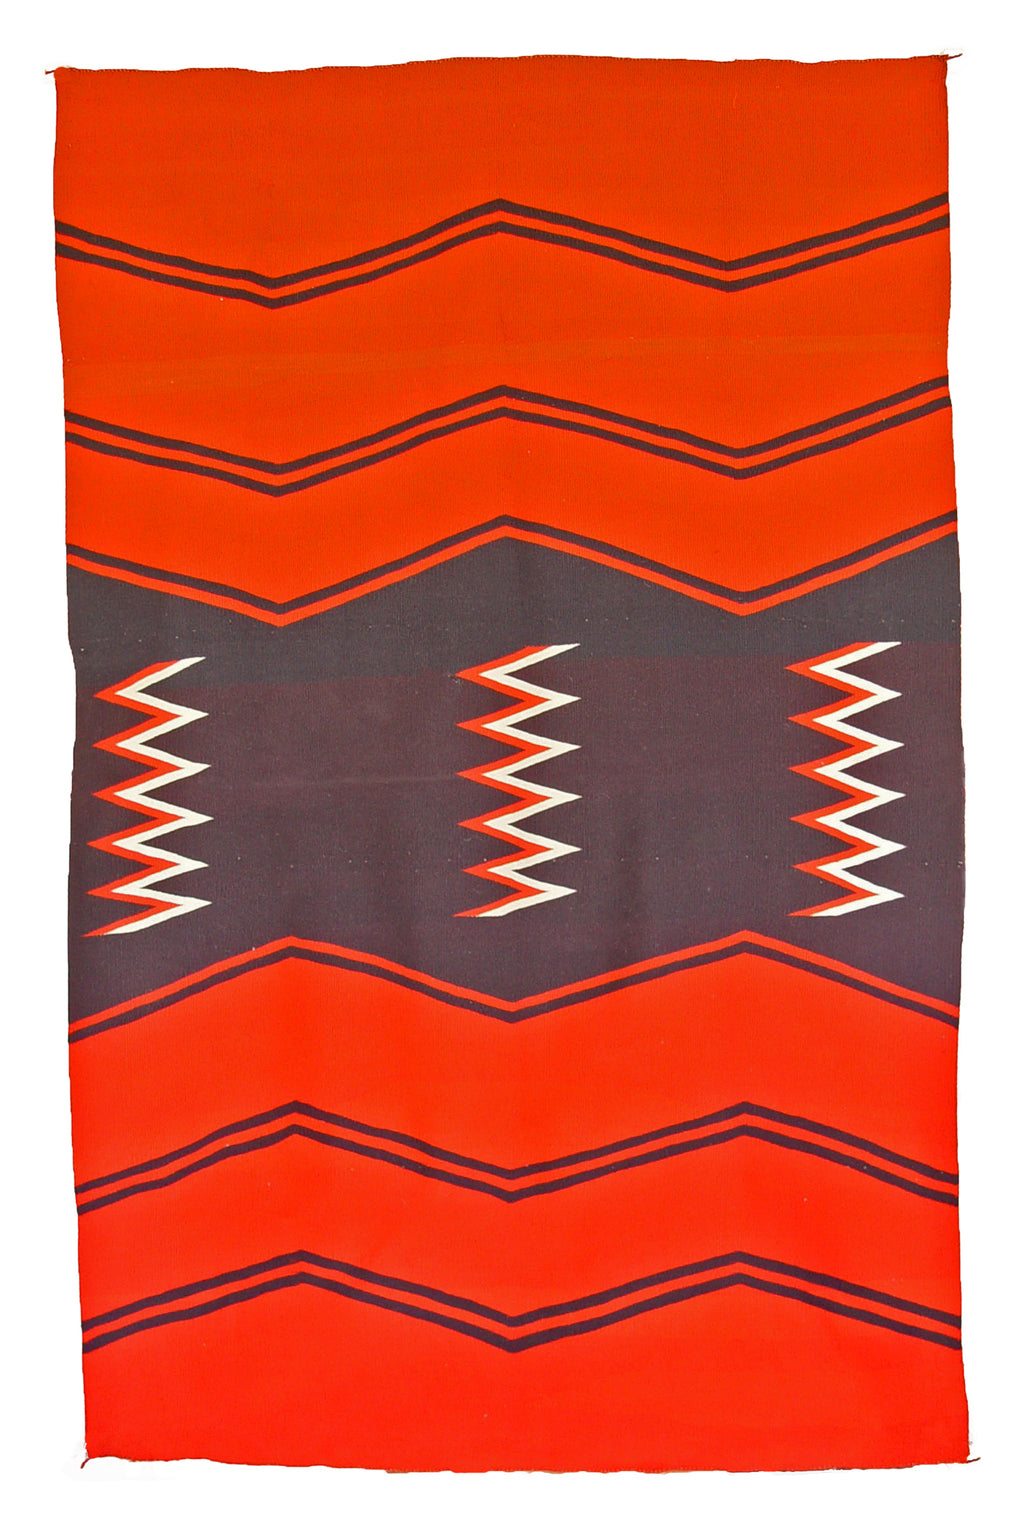 Neo-Classic Serape : Historic Navajo Weaving : PC 37 - Getzwiller's Nizhoni Ranch Gallery